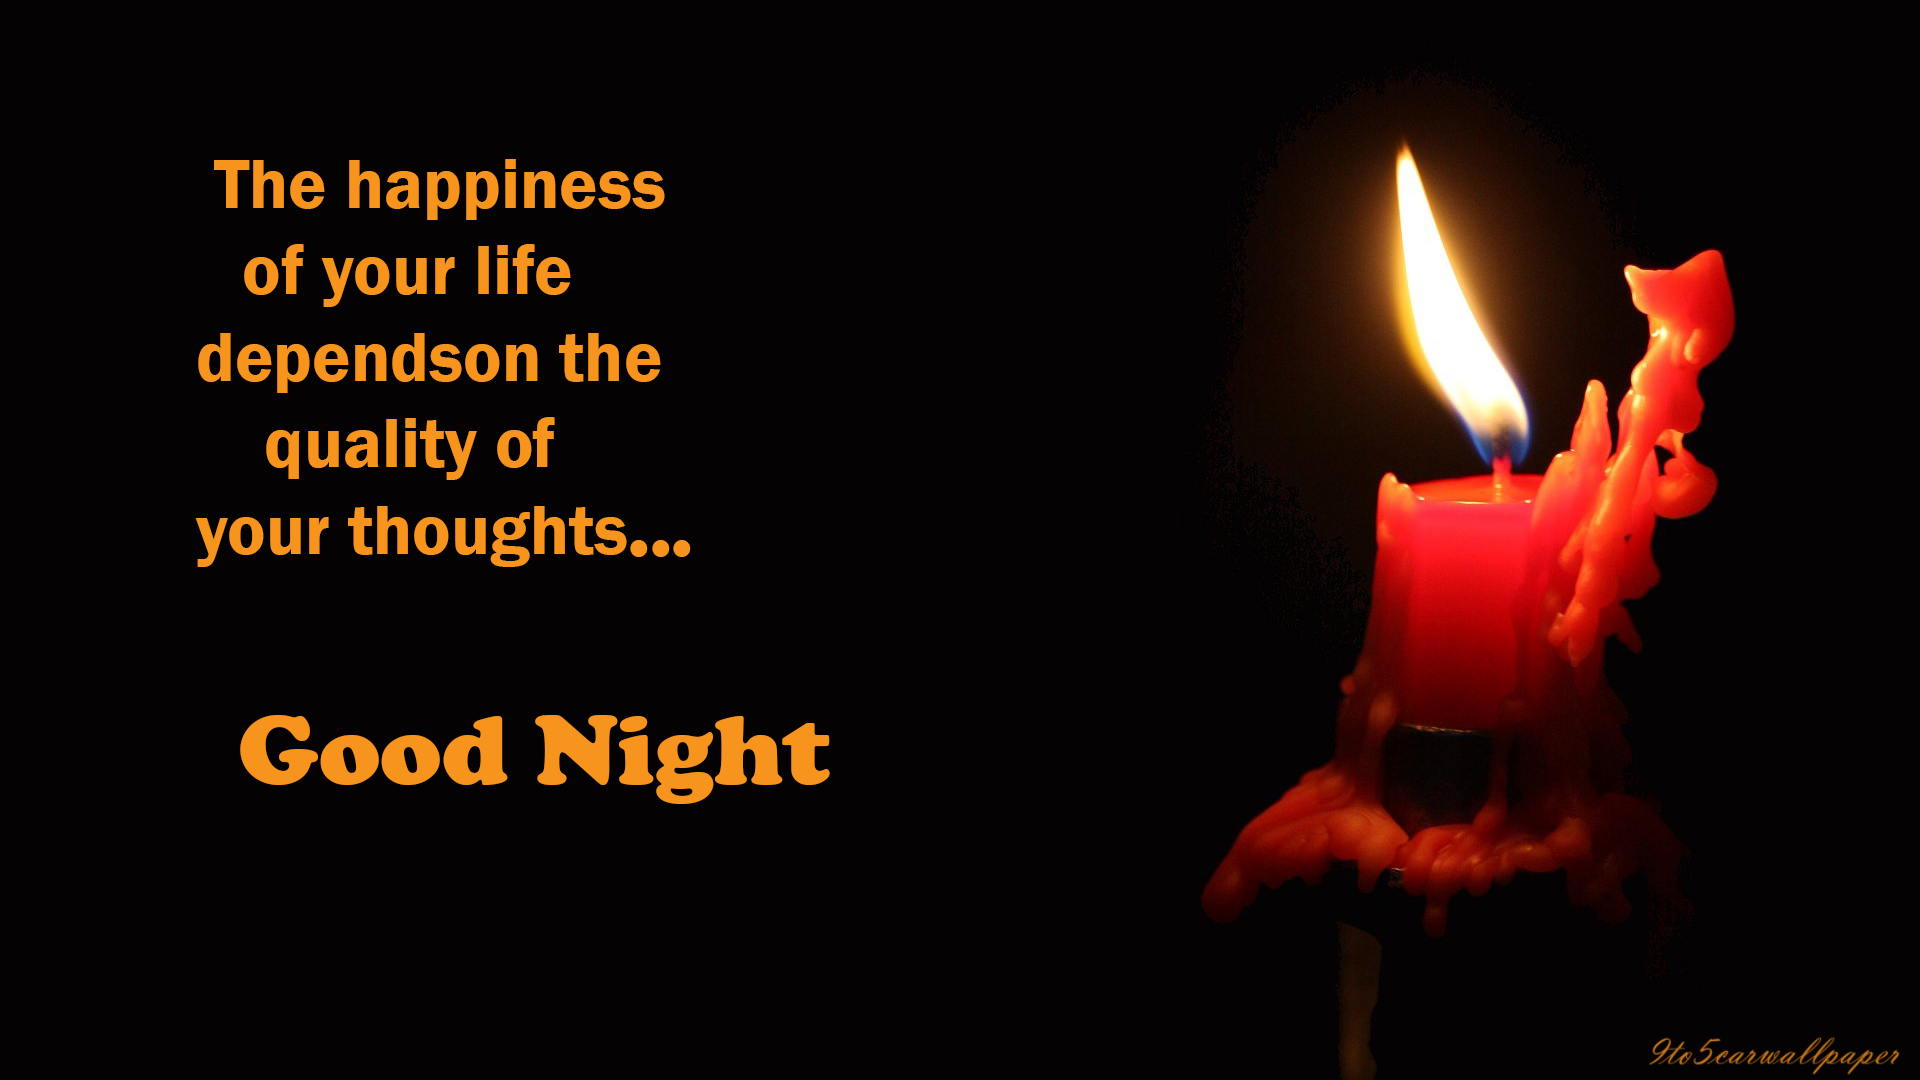 beautiful good night wishes 2017 hd images  9to5 car